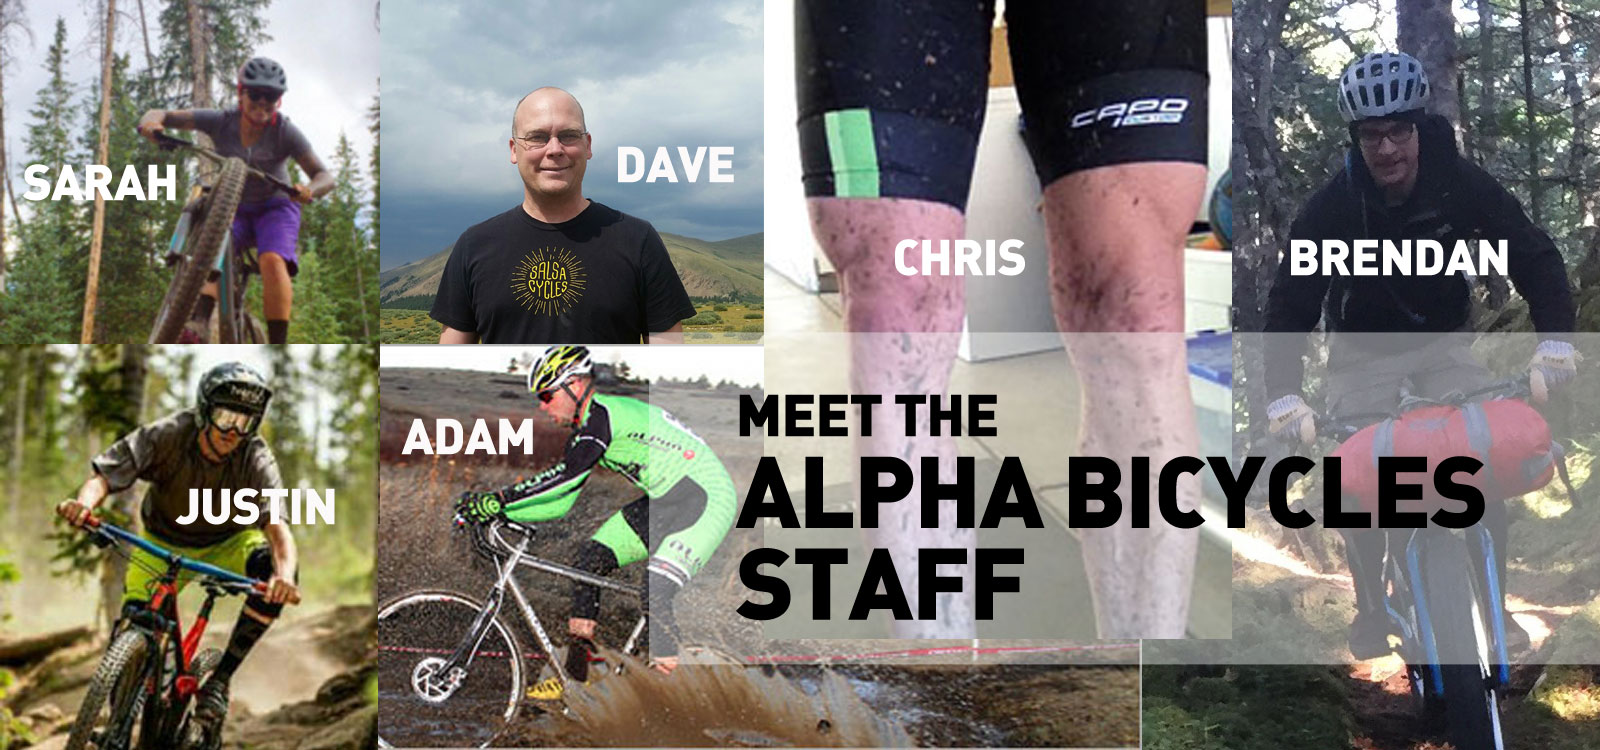 the staff at alpha bicycle company